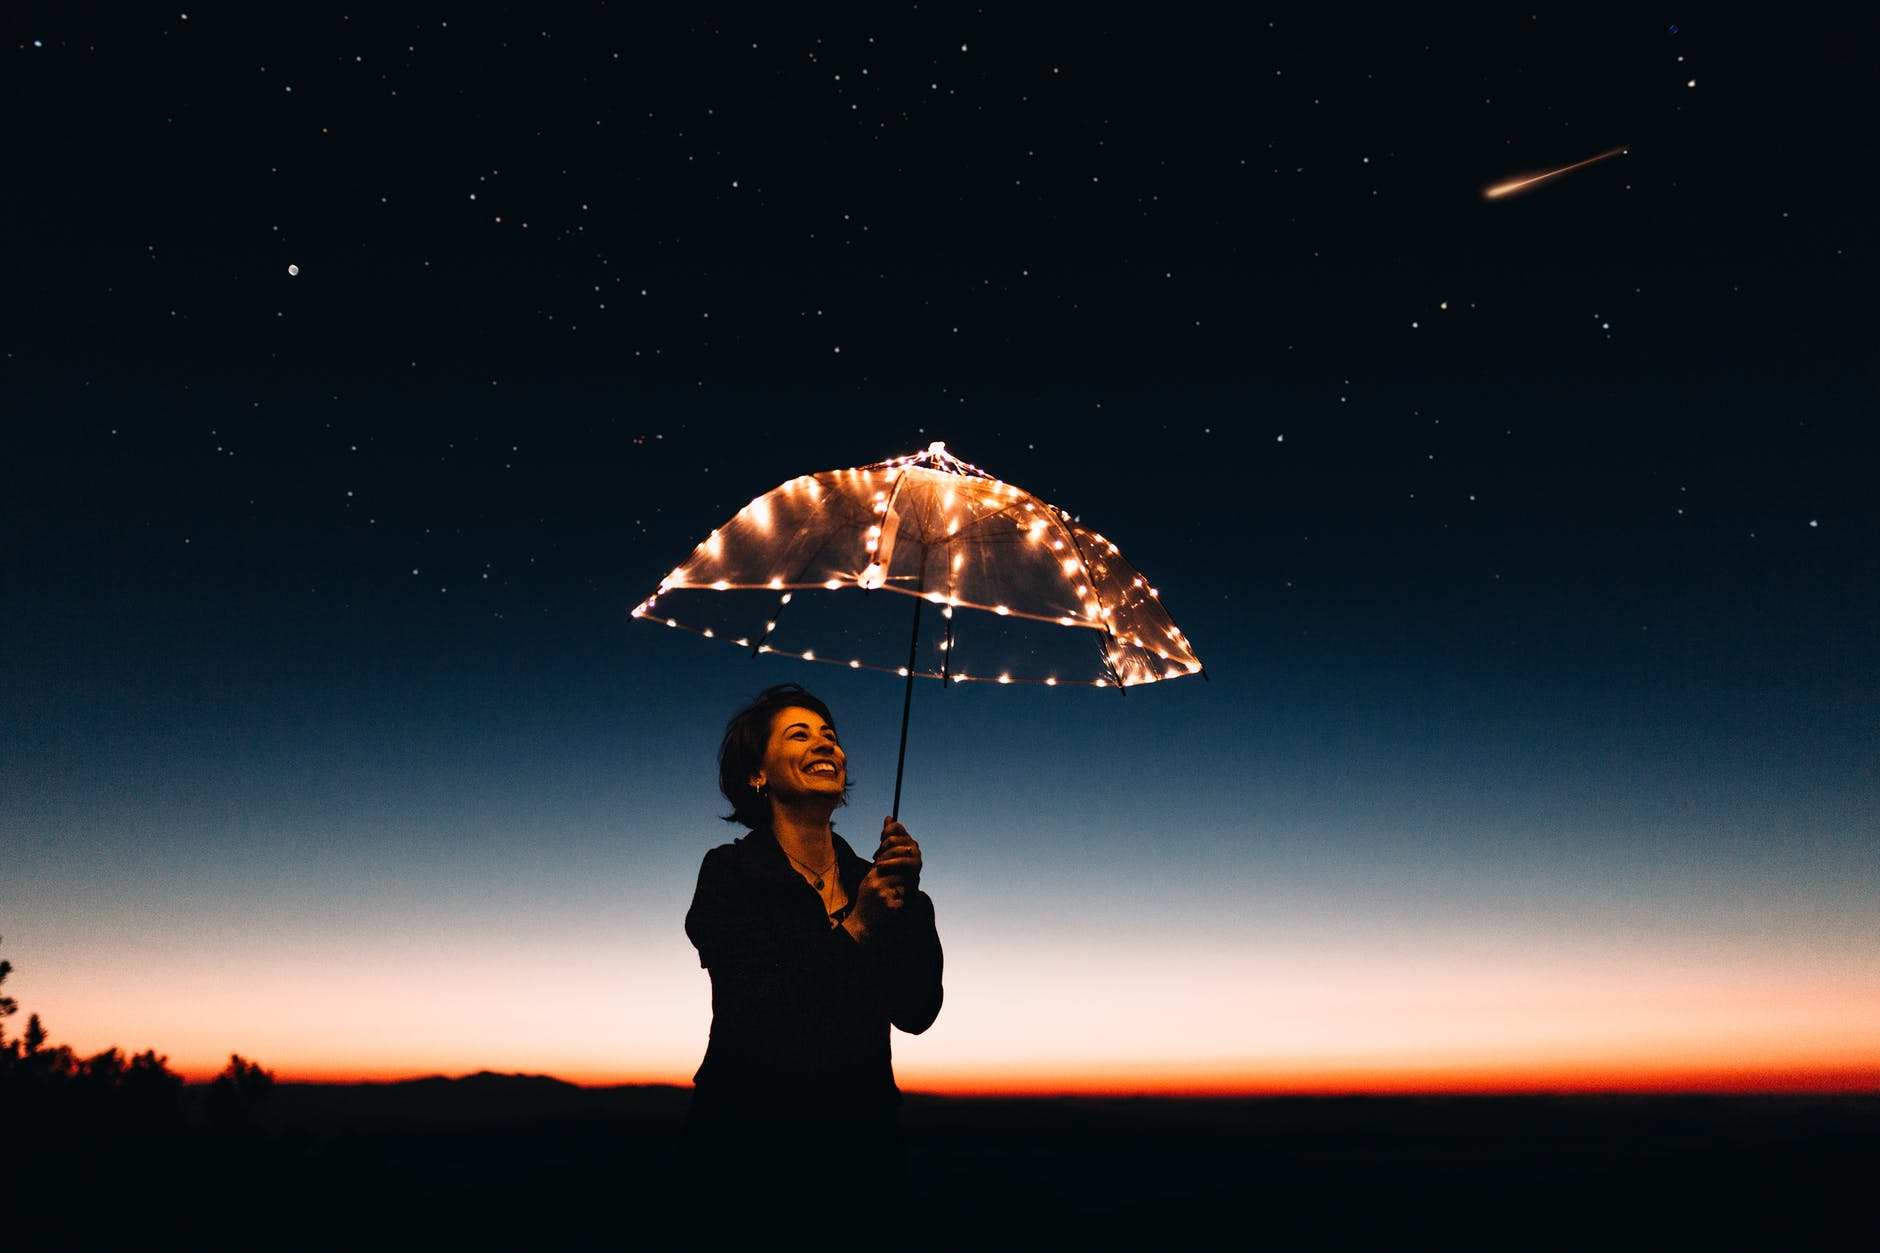 a woman holds an umbrella covered with fairy lights against a night sky - life coaching for self development and personal development - NLP